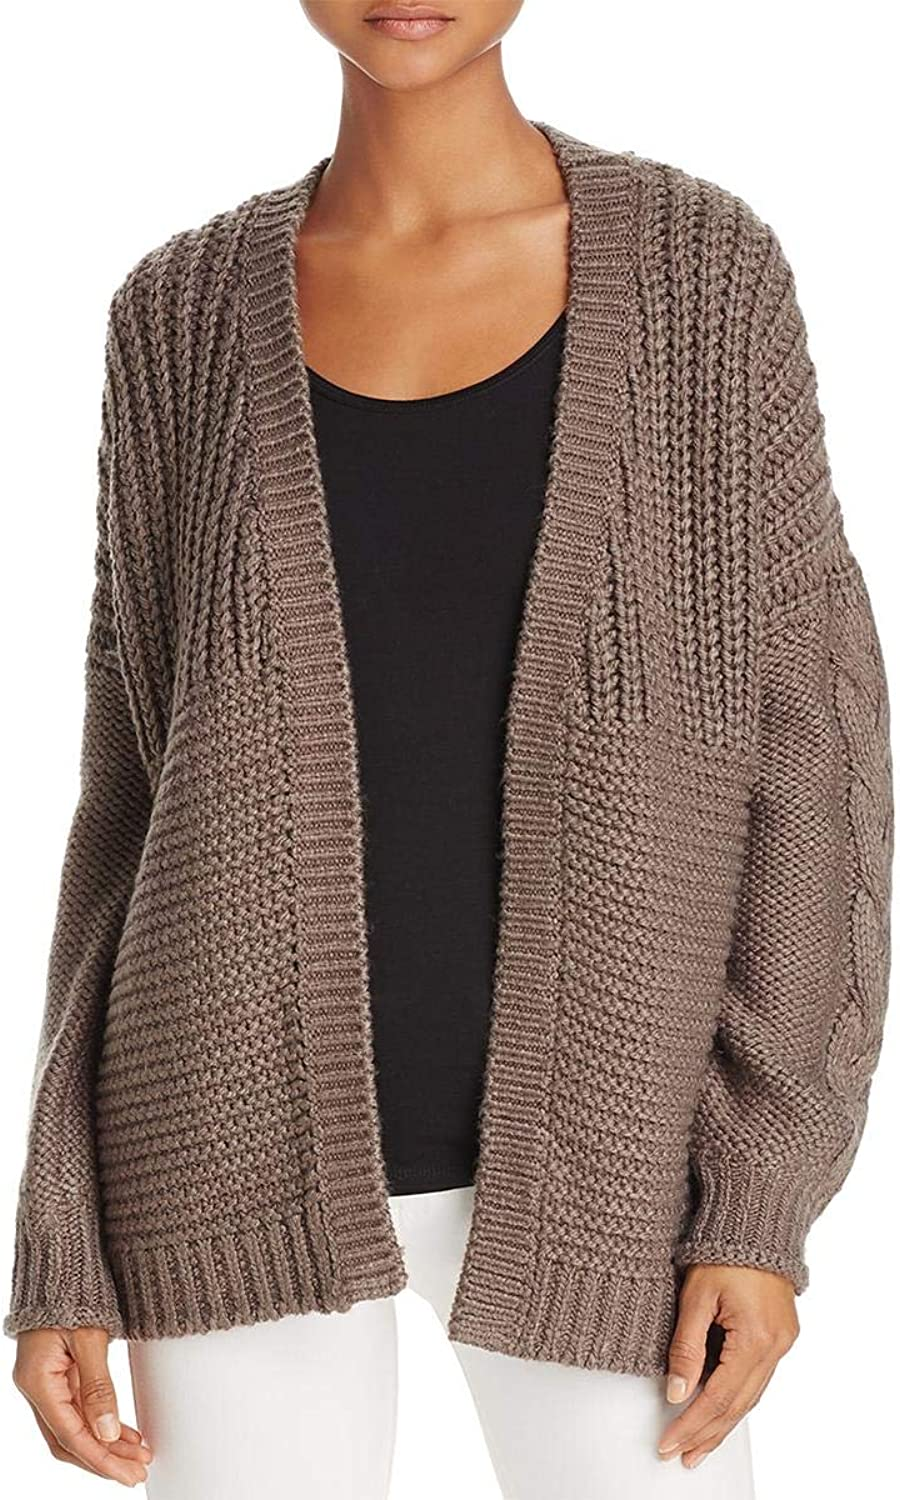 Beltaine Womens Oversized OpenFront Cardigan Sweater